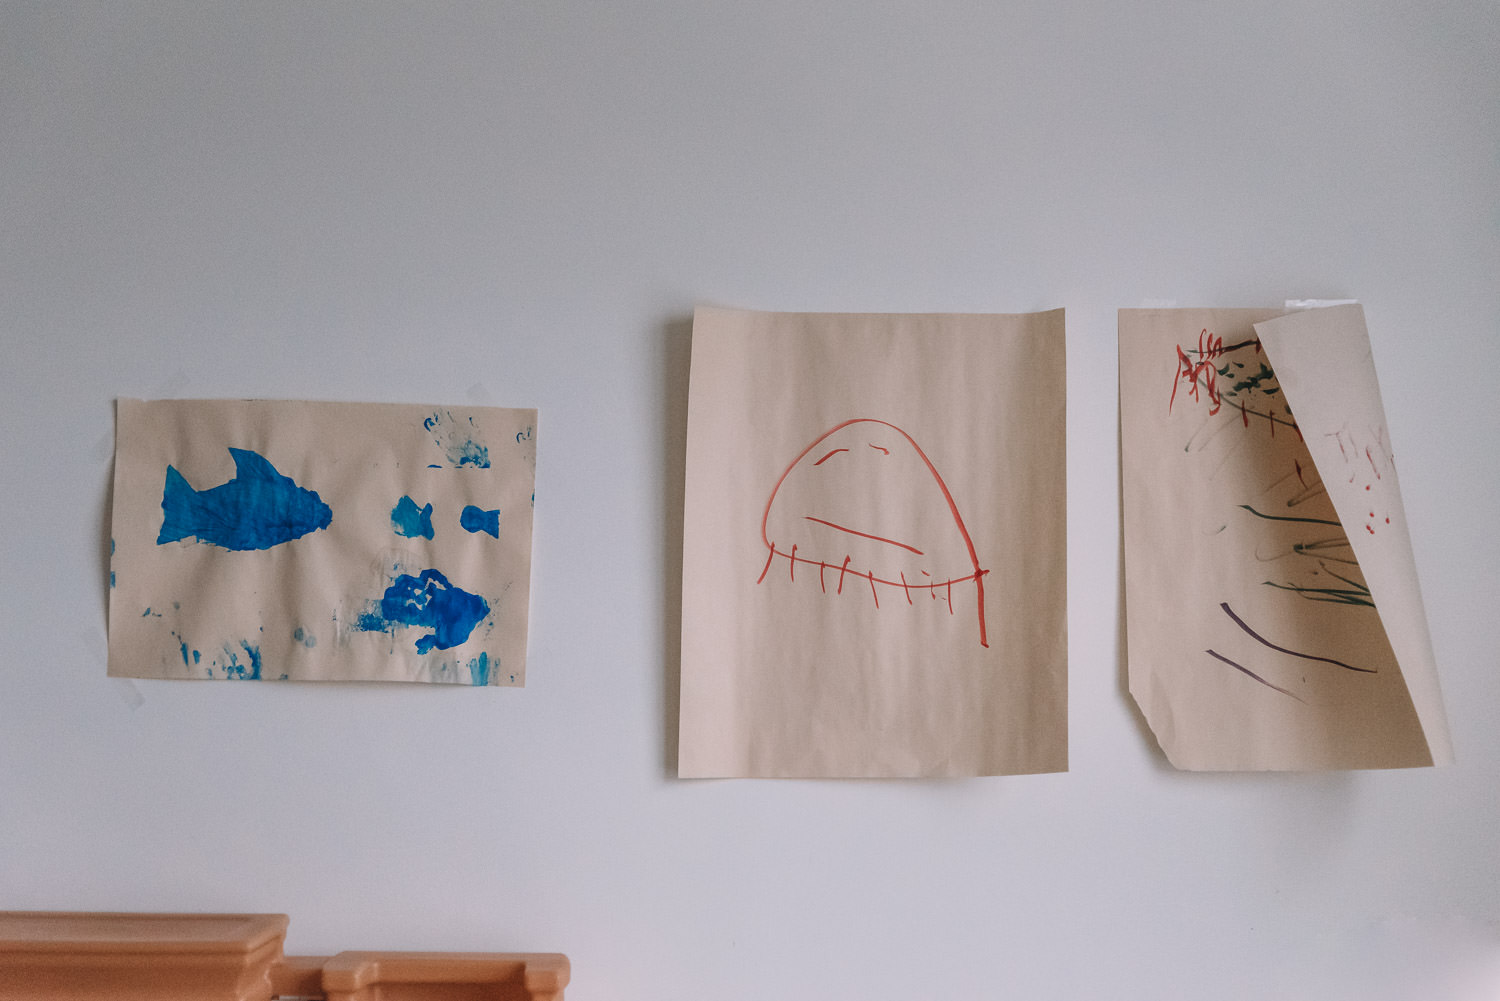 Children's artwork hangs on the walls.